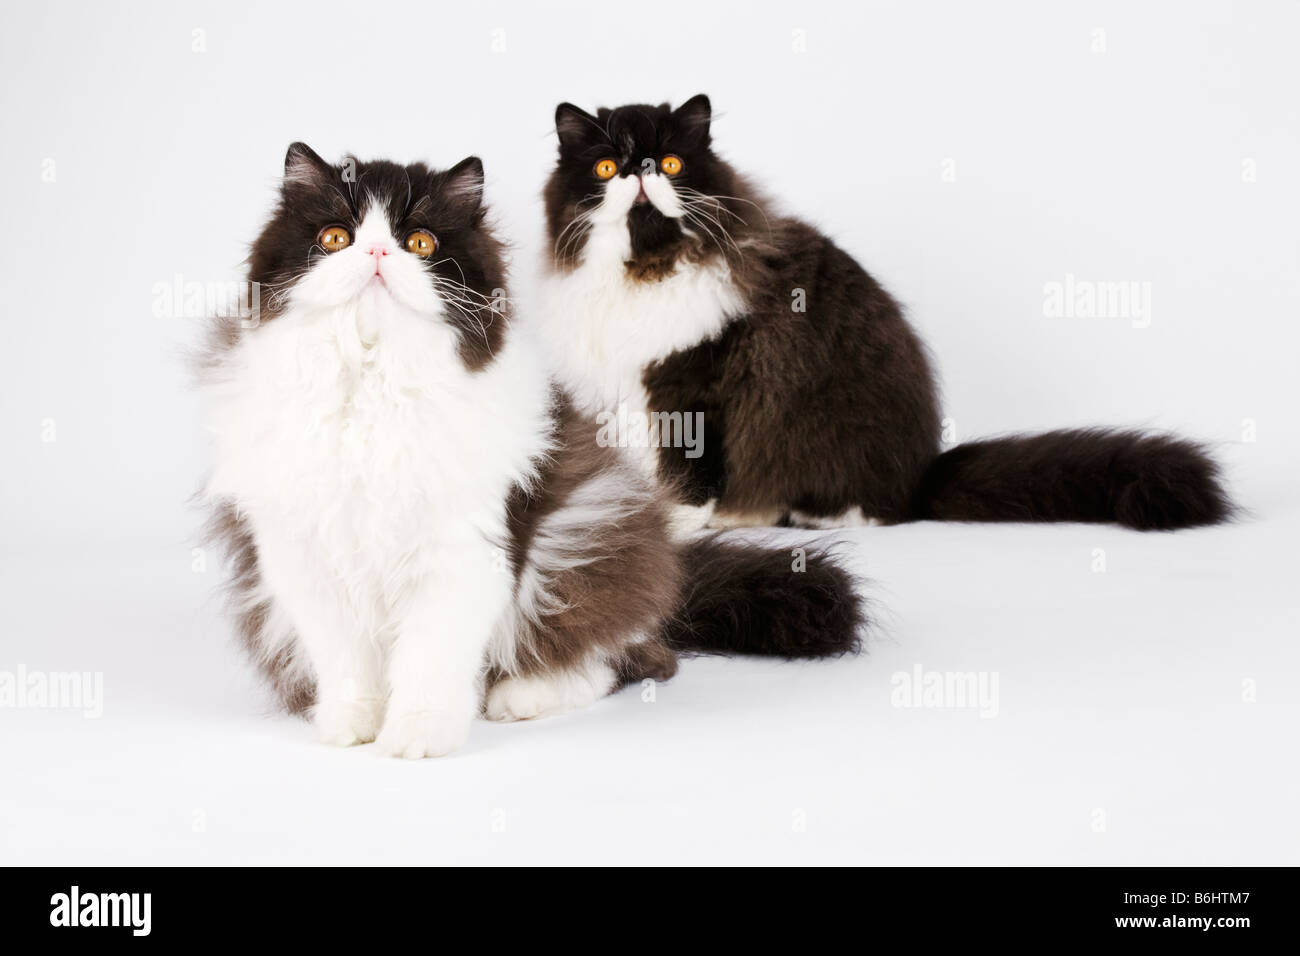 Domestic cats Black Bi Colour Persians Studio shot against white background - Stock Image